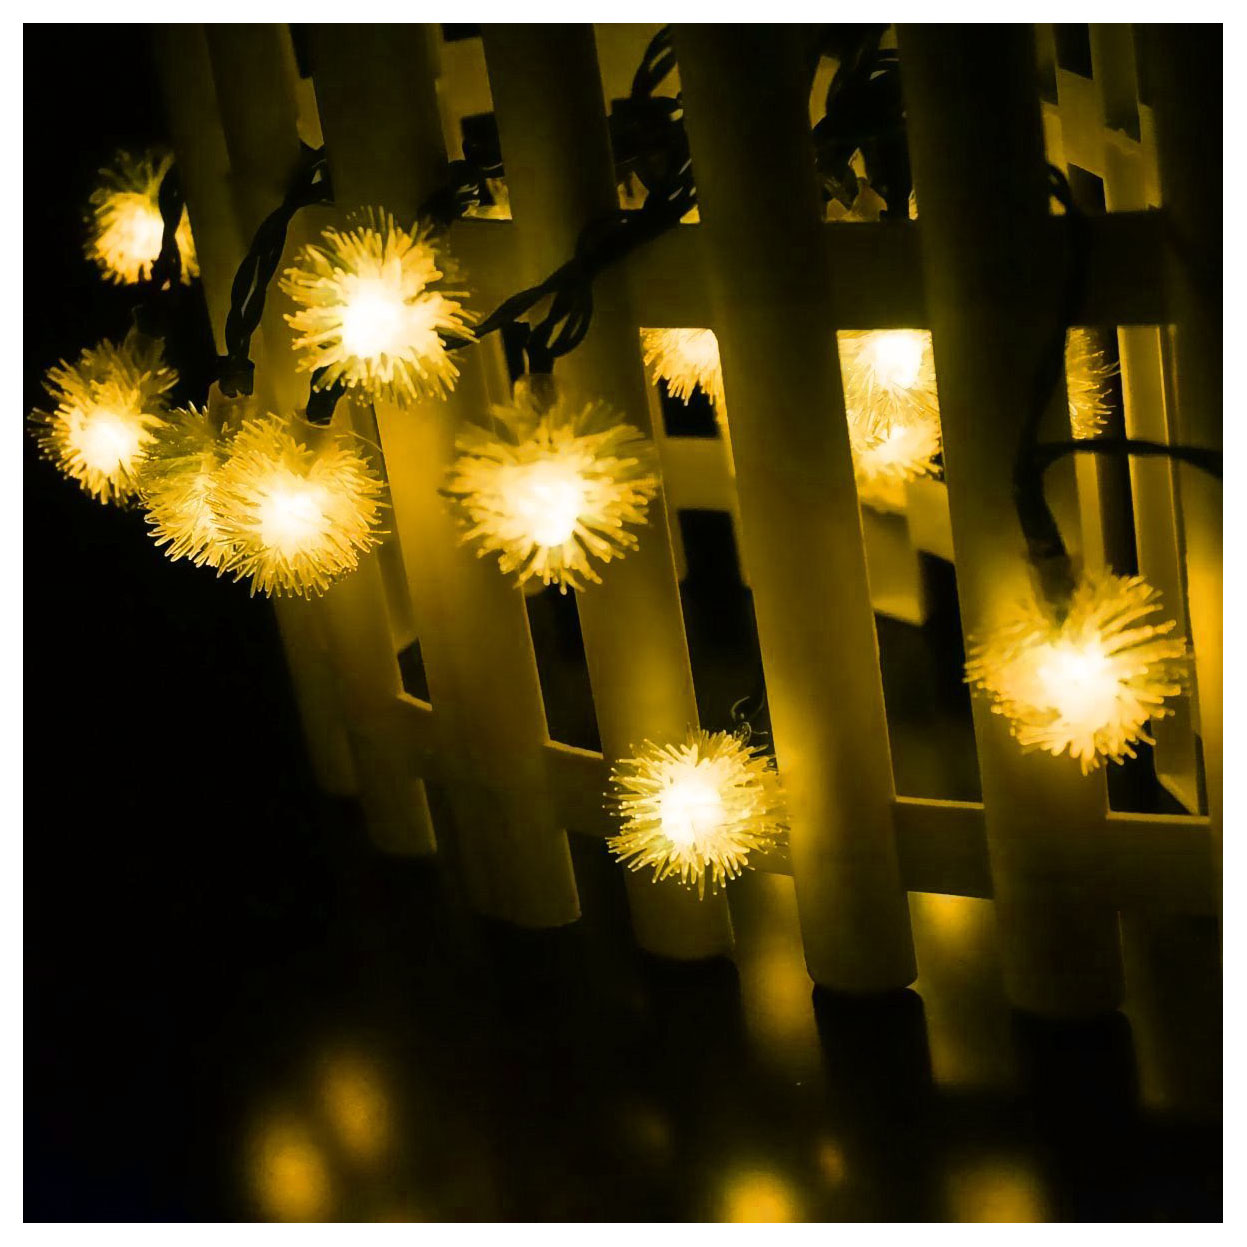 LED 4.8m 20 LED Solar Outdoor String Fairy Lights Snowball Solar Powered for Outside Patio Party Christmas Warm white Color